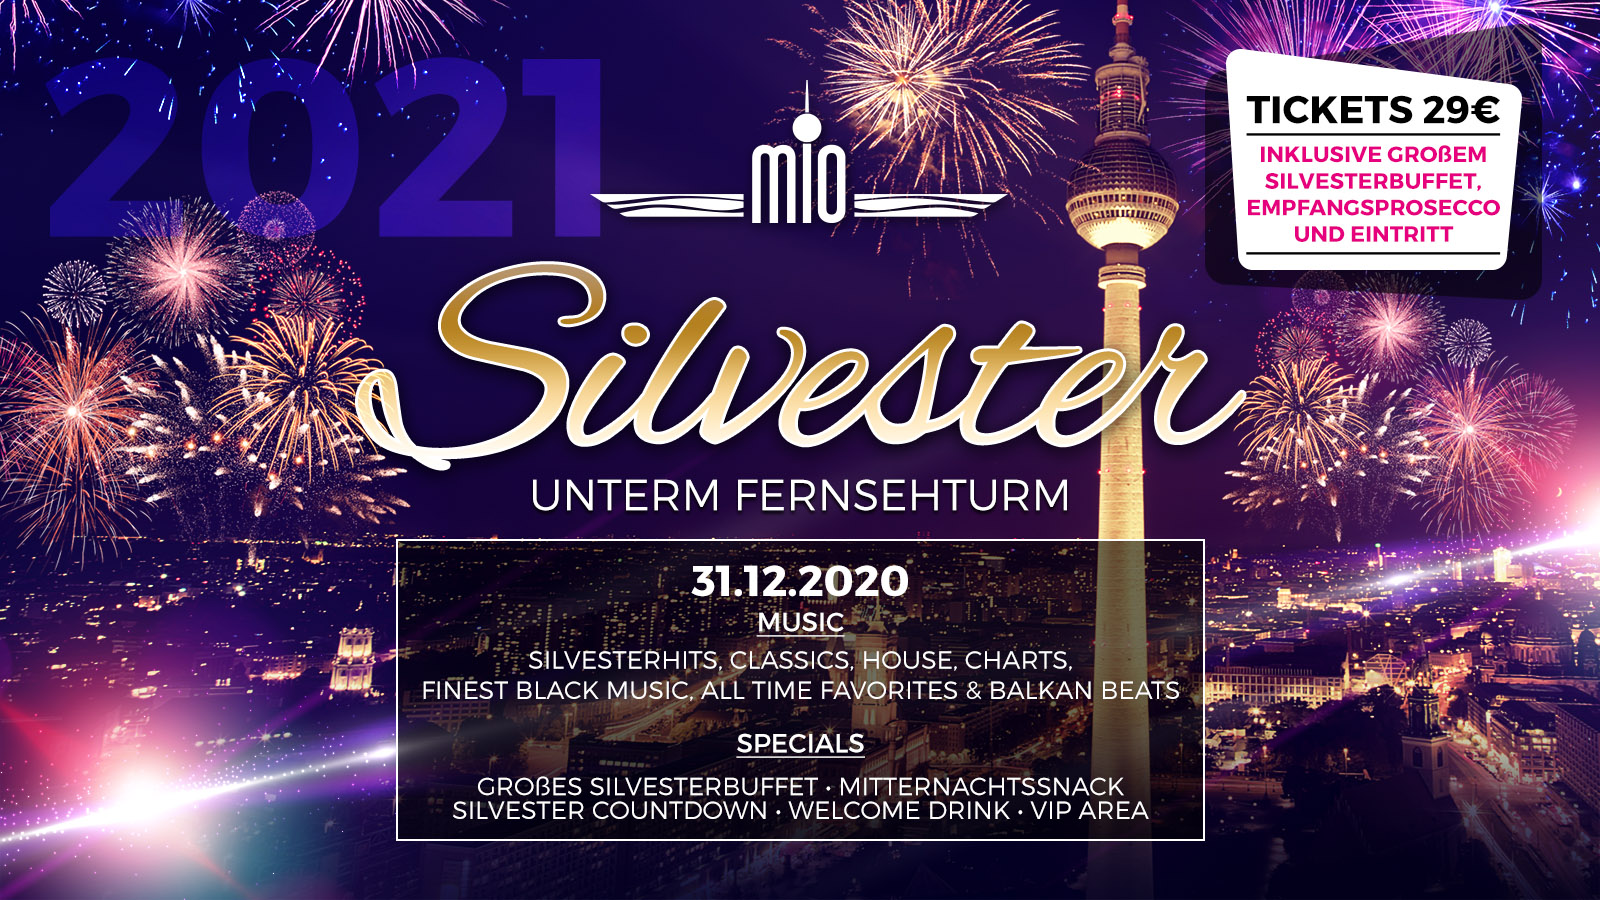 Silvesterparty 2021 17